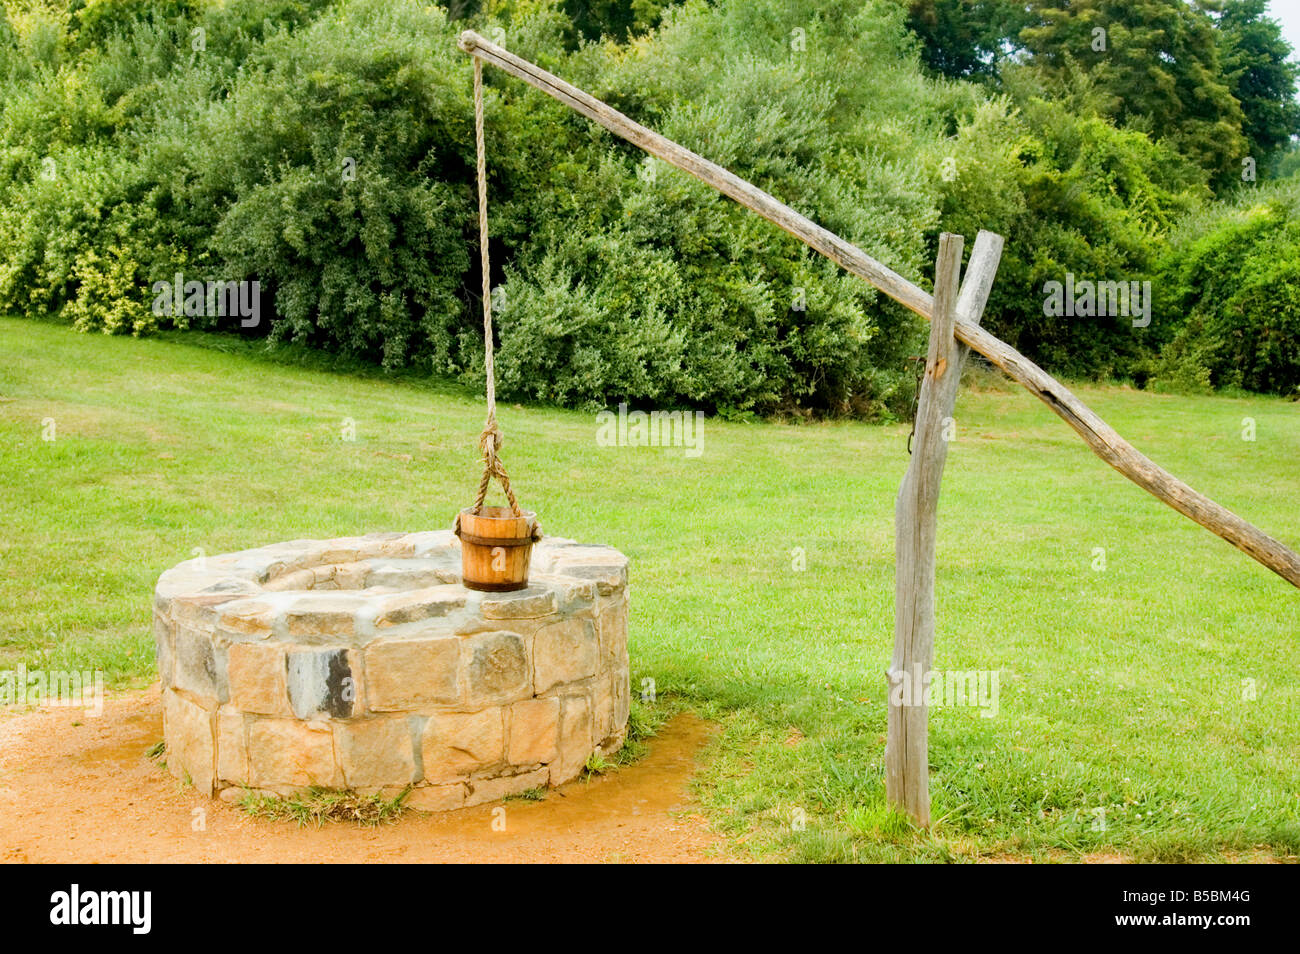 water well with bucket and lever Stock Photo: 20540928 - Alamy